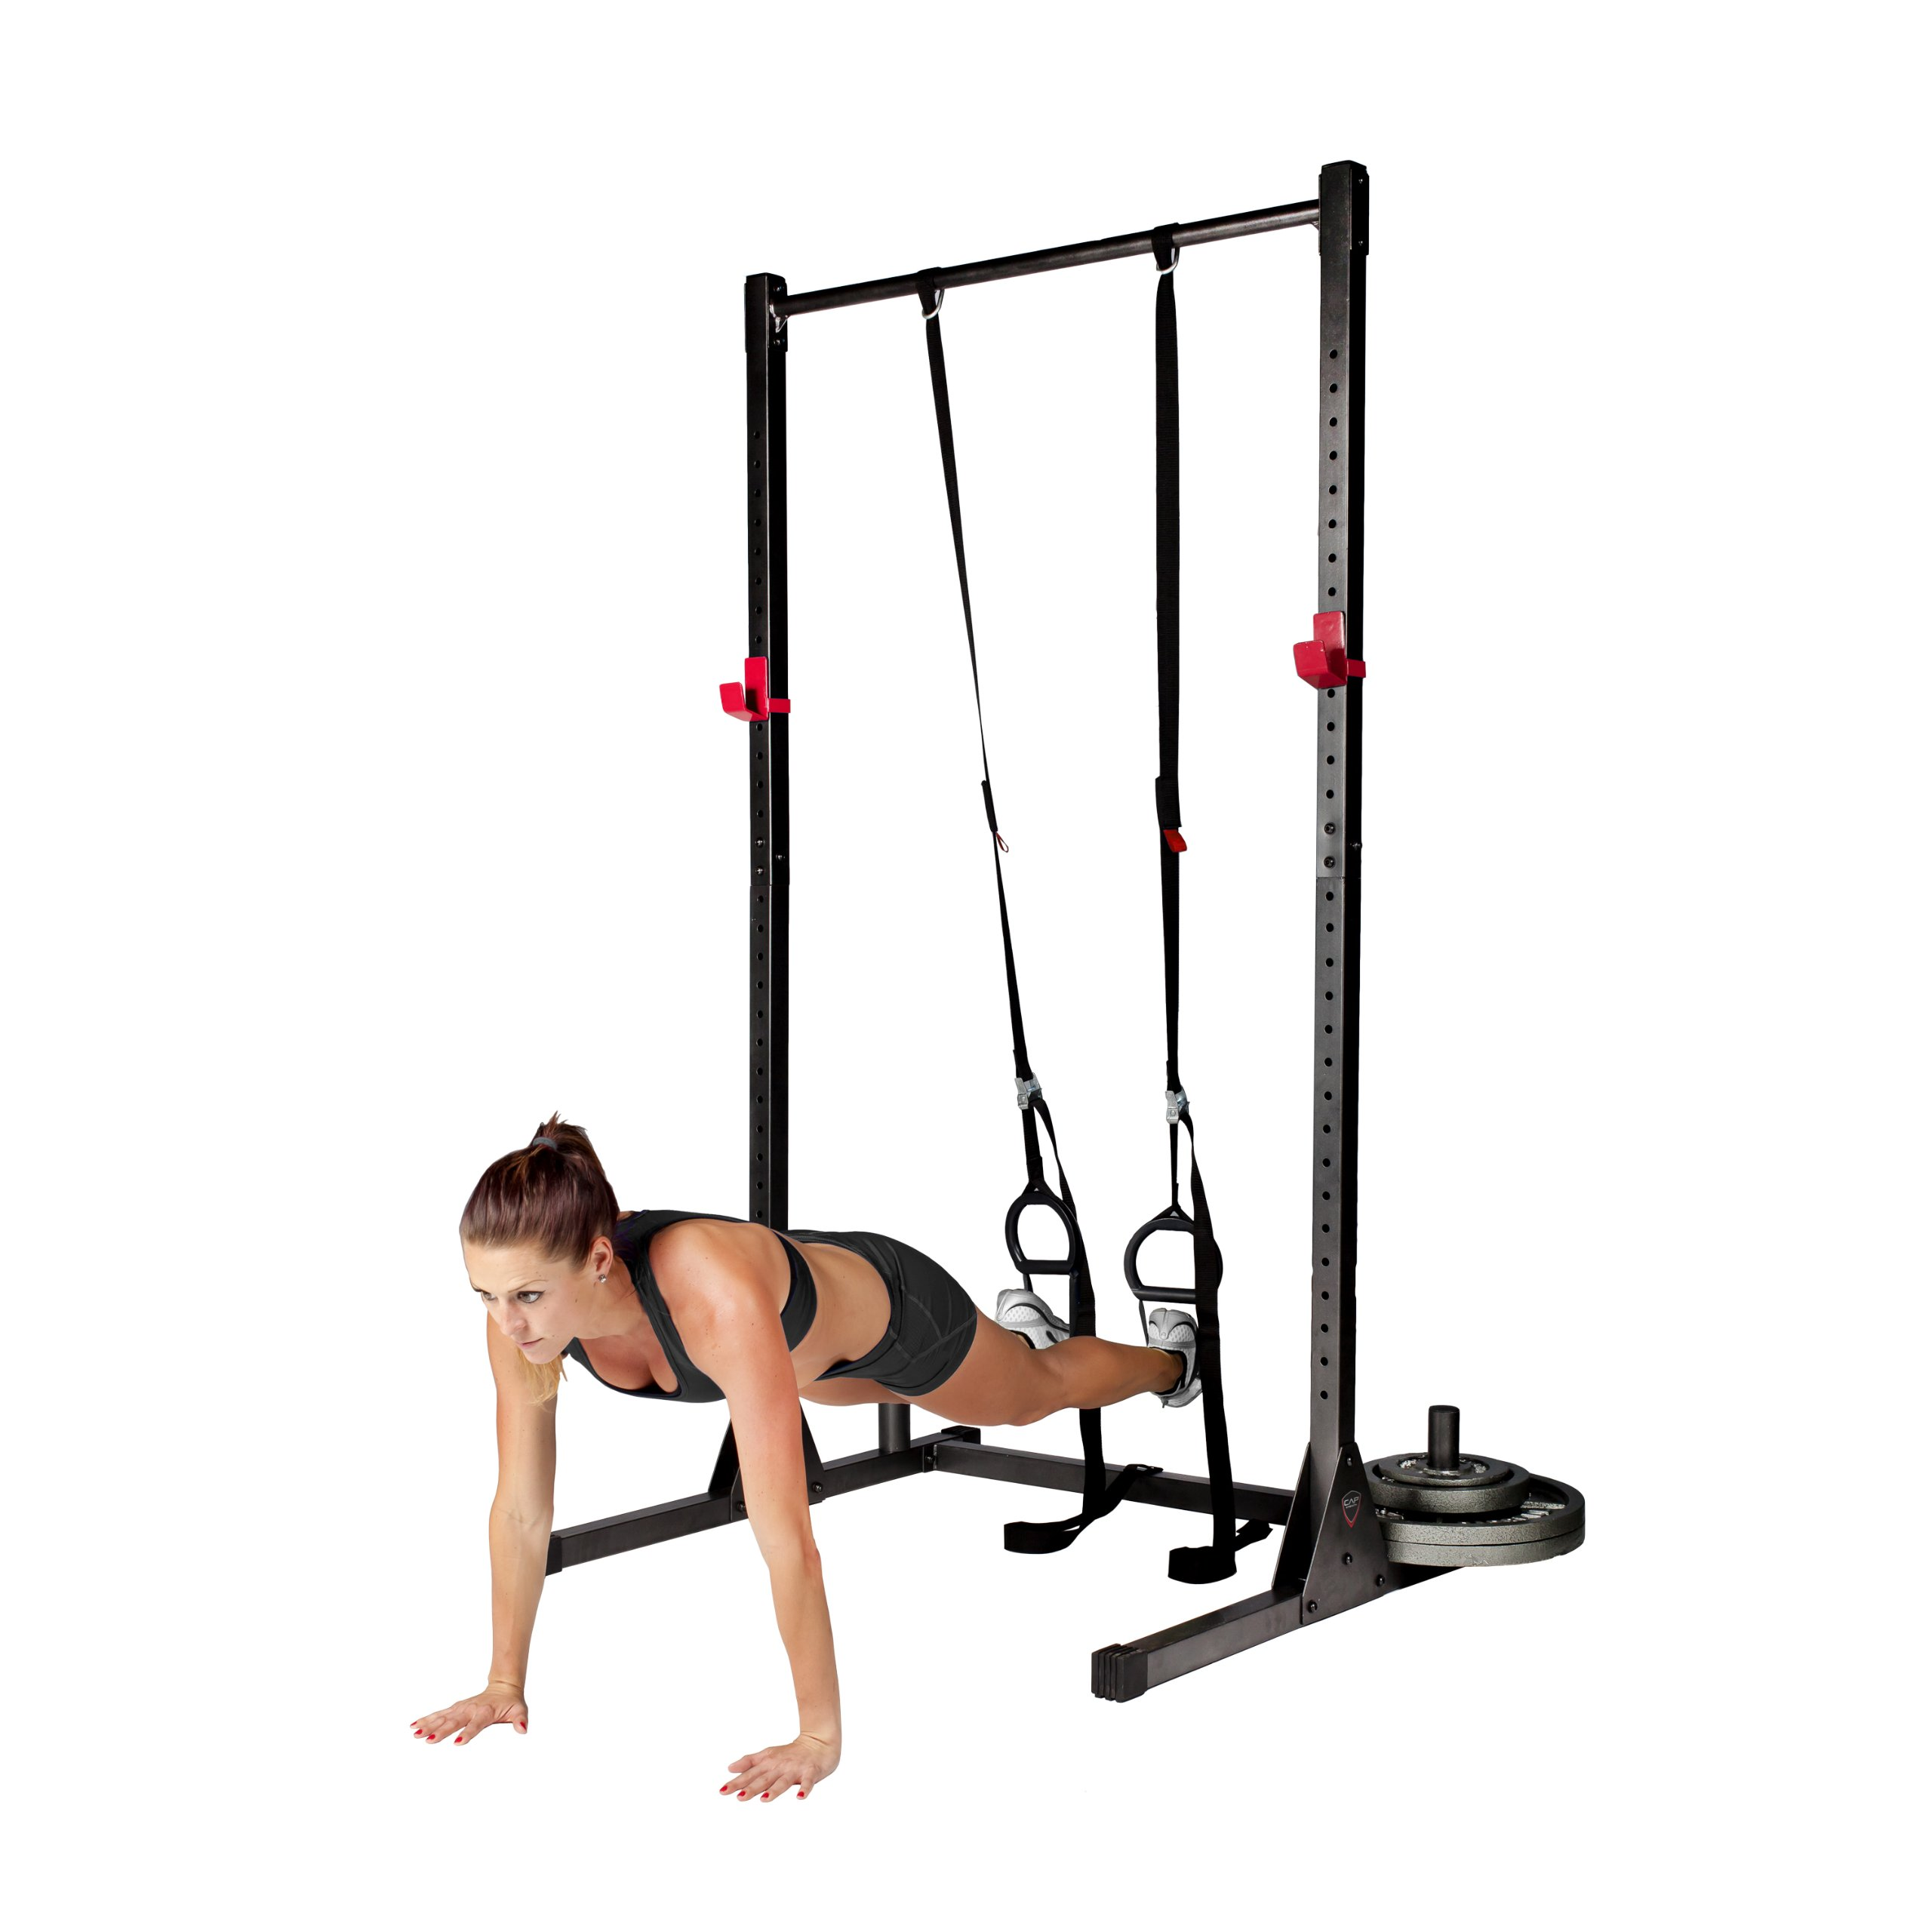 CAP Barbell Power Rack Exercise Stand, Multiple Colors by CAP Barbell (Image #6)